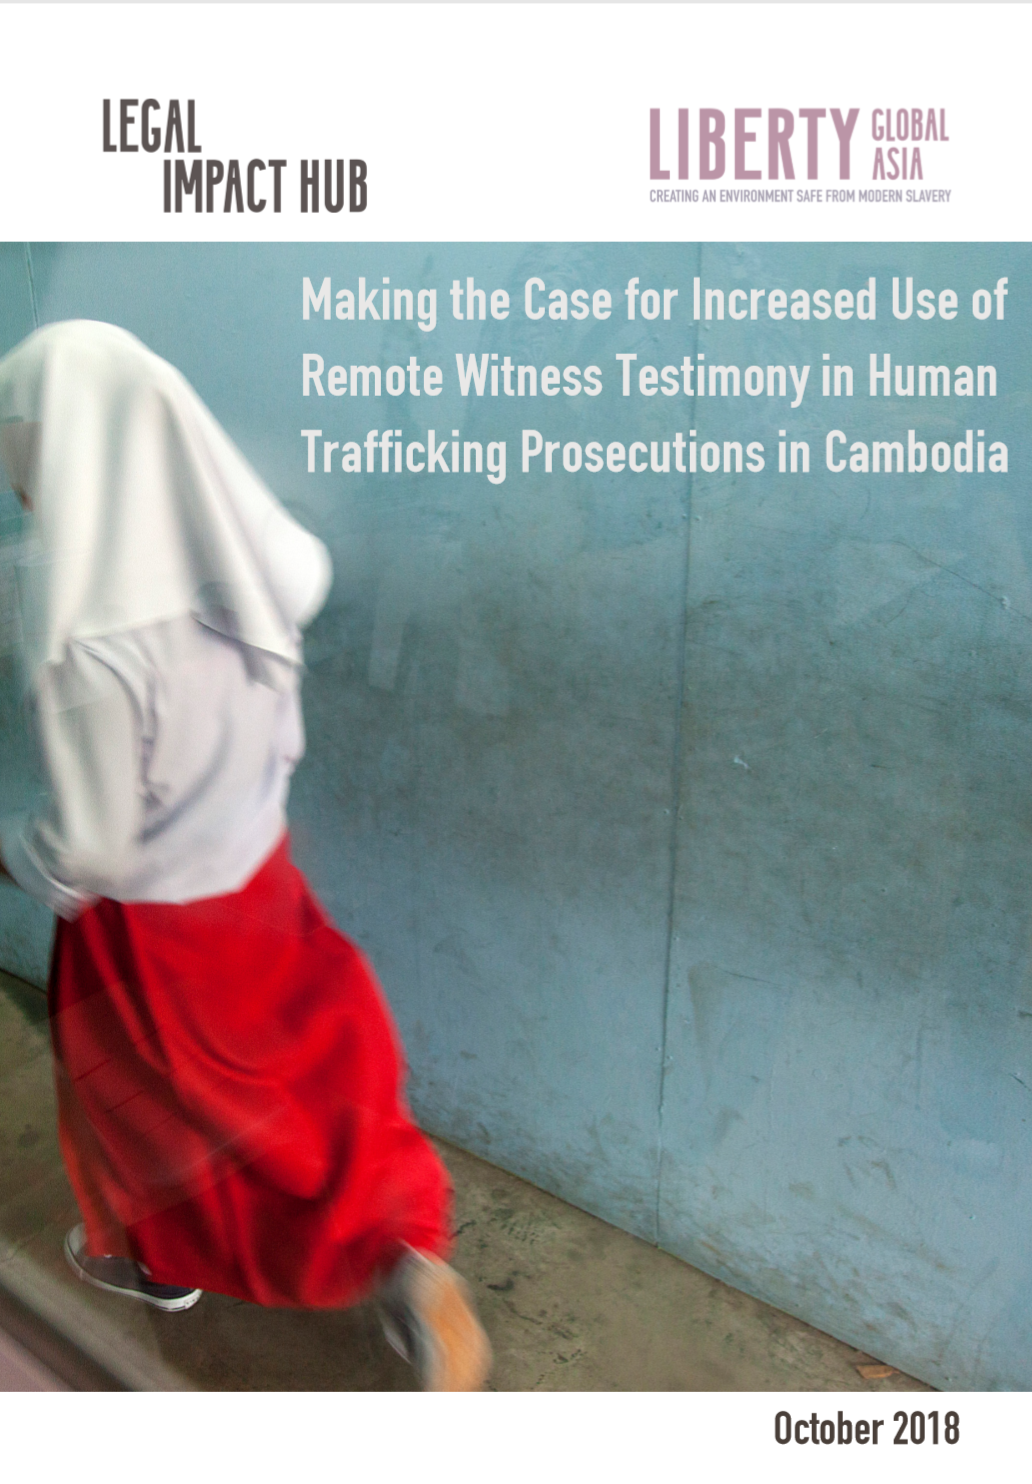 - All too often cross-border human trafficking prosecutions in Cambodia and elsewhere are stalled or derailed because victims are unwilling or unable to participate in the process. This lack of willingness or ability may be due to security concerns, a desire to return home to focus on recovery and rehabilitation, or other immediate needs such as earning a living. Confronting their traffickers in court and recalling horrifying and personal details of the abuses can be particularly traumatic. This paper examines the legal systems of several ASEAN states that have incorporated comprehensive laws relating to the use of video-link evidence and analyses the relevant laws in Cambodia. The paper makes the case for increased use of remote witness testimony as a viable, safe, and legal alternative for victims of human trafficking to participate in the judicial process in Cambodia or elsewhere.